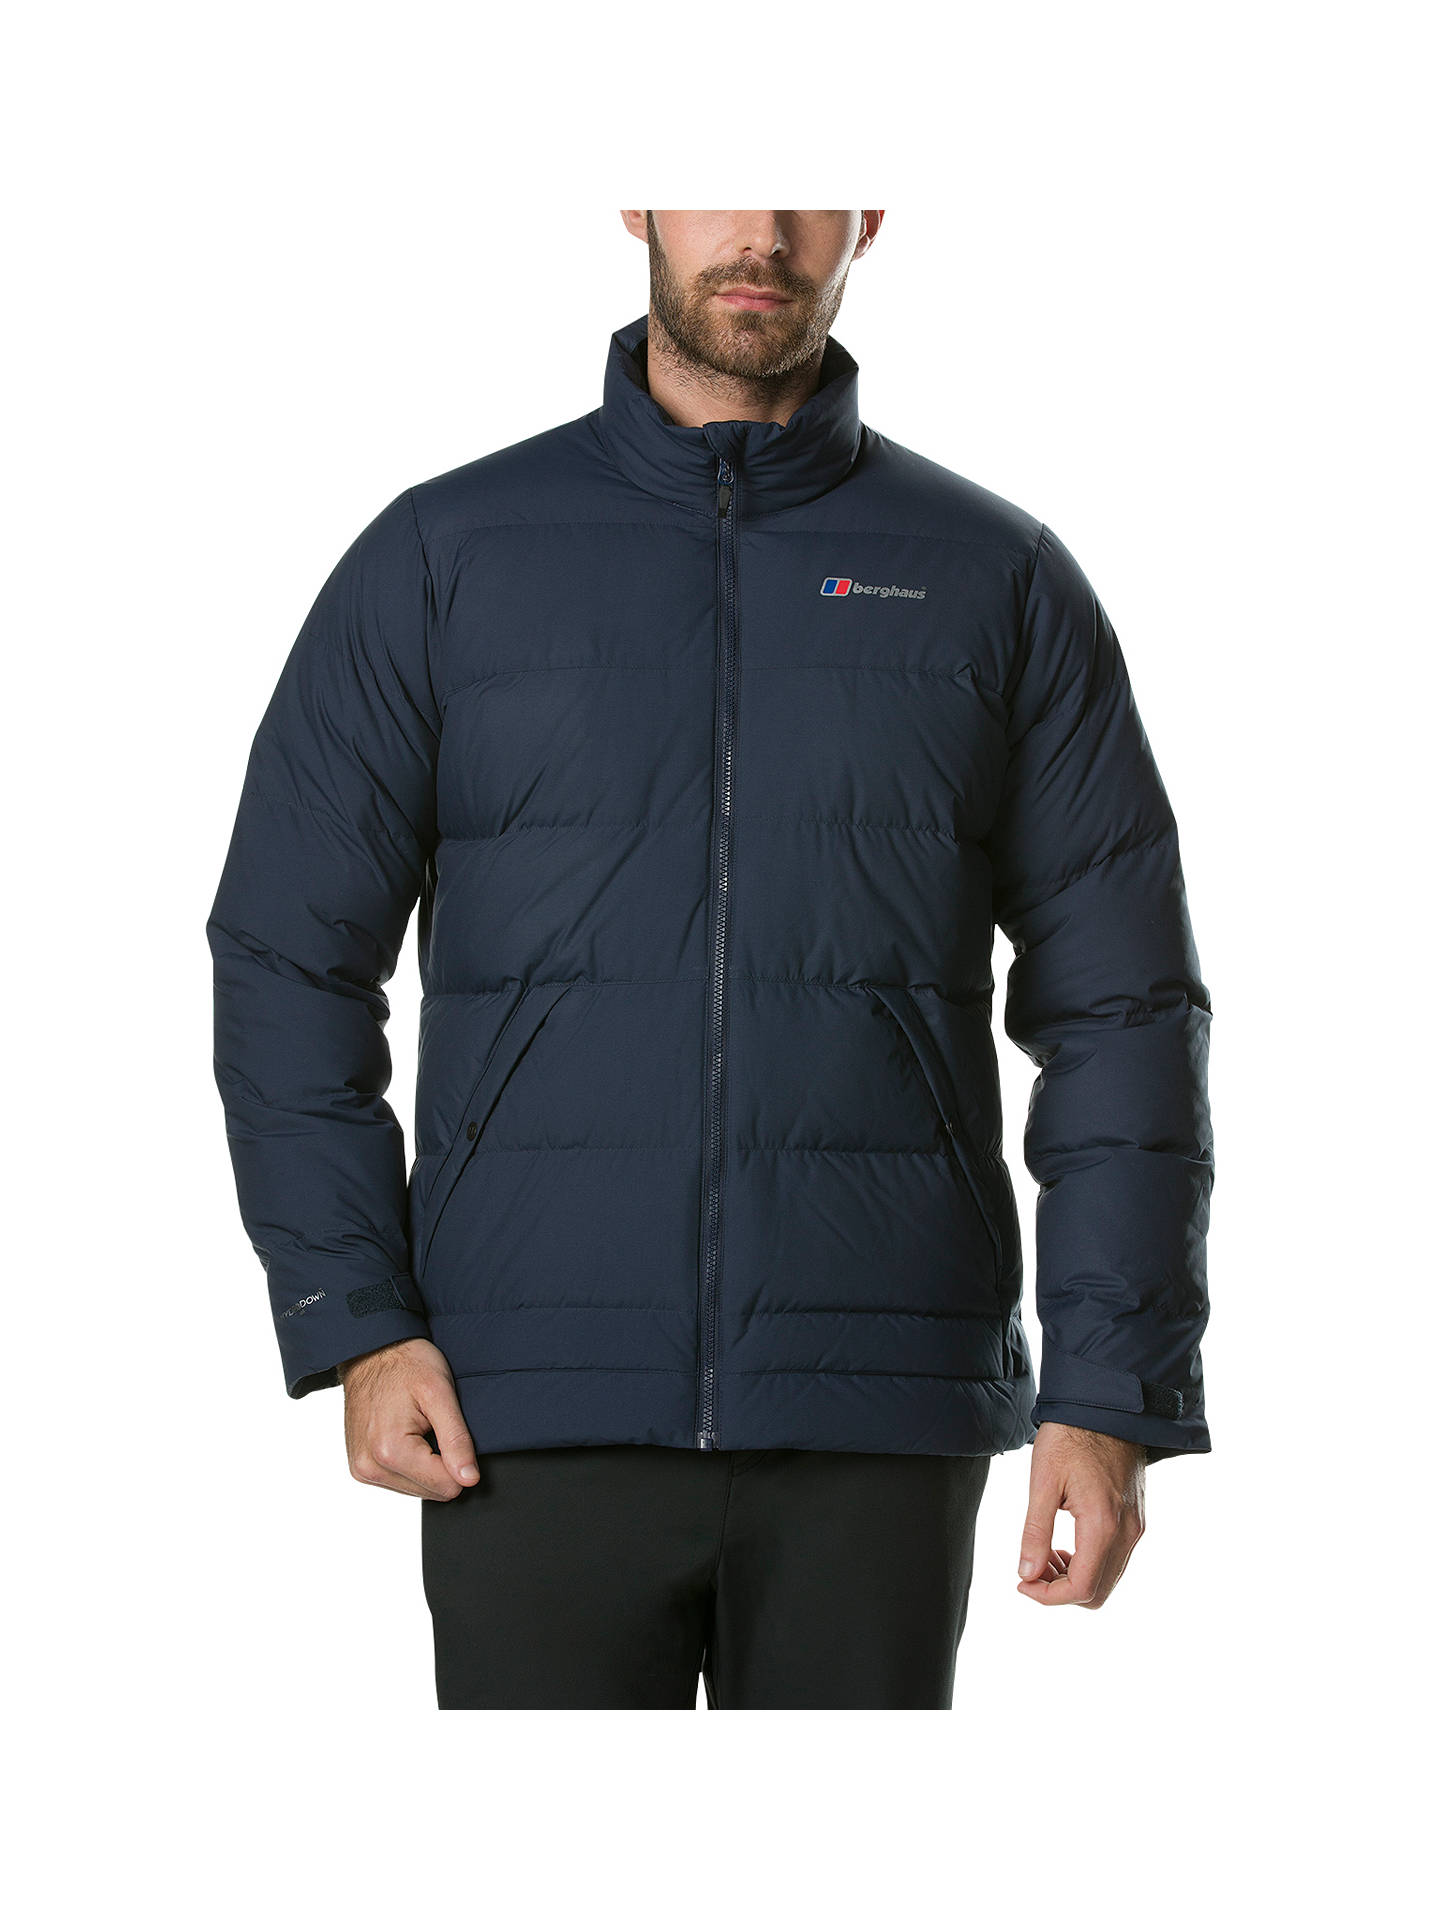 BuyBerghaus Mavora Men's Jacket, Dusk, S Online at johnlewis.com